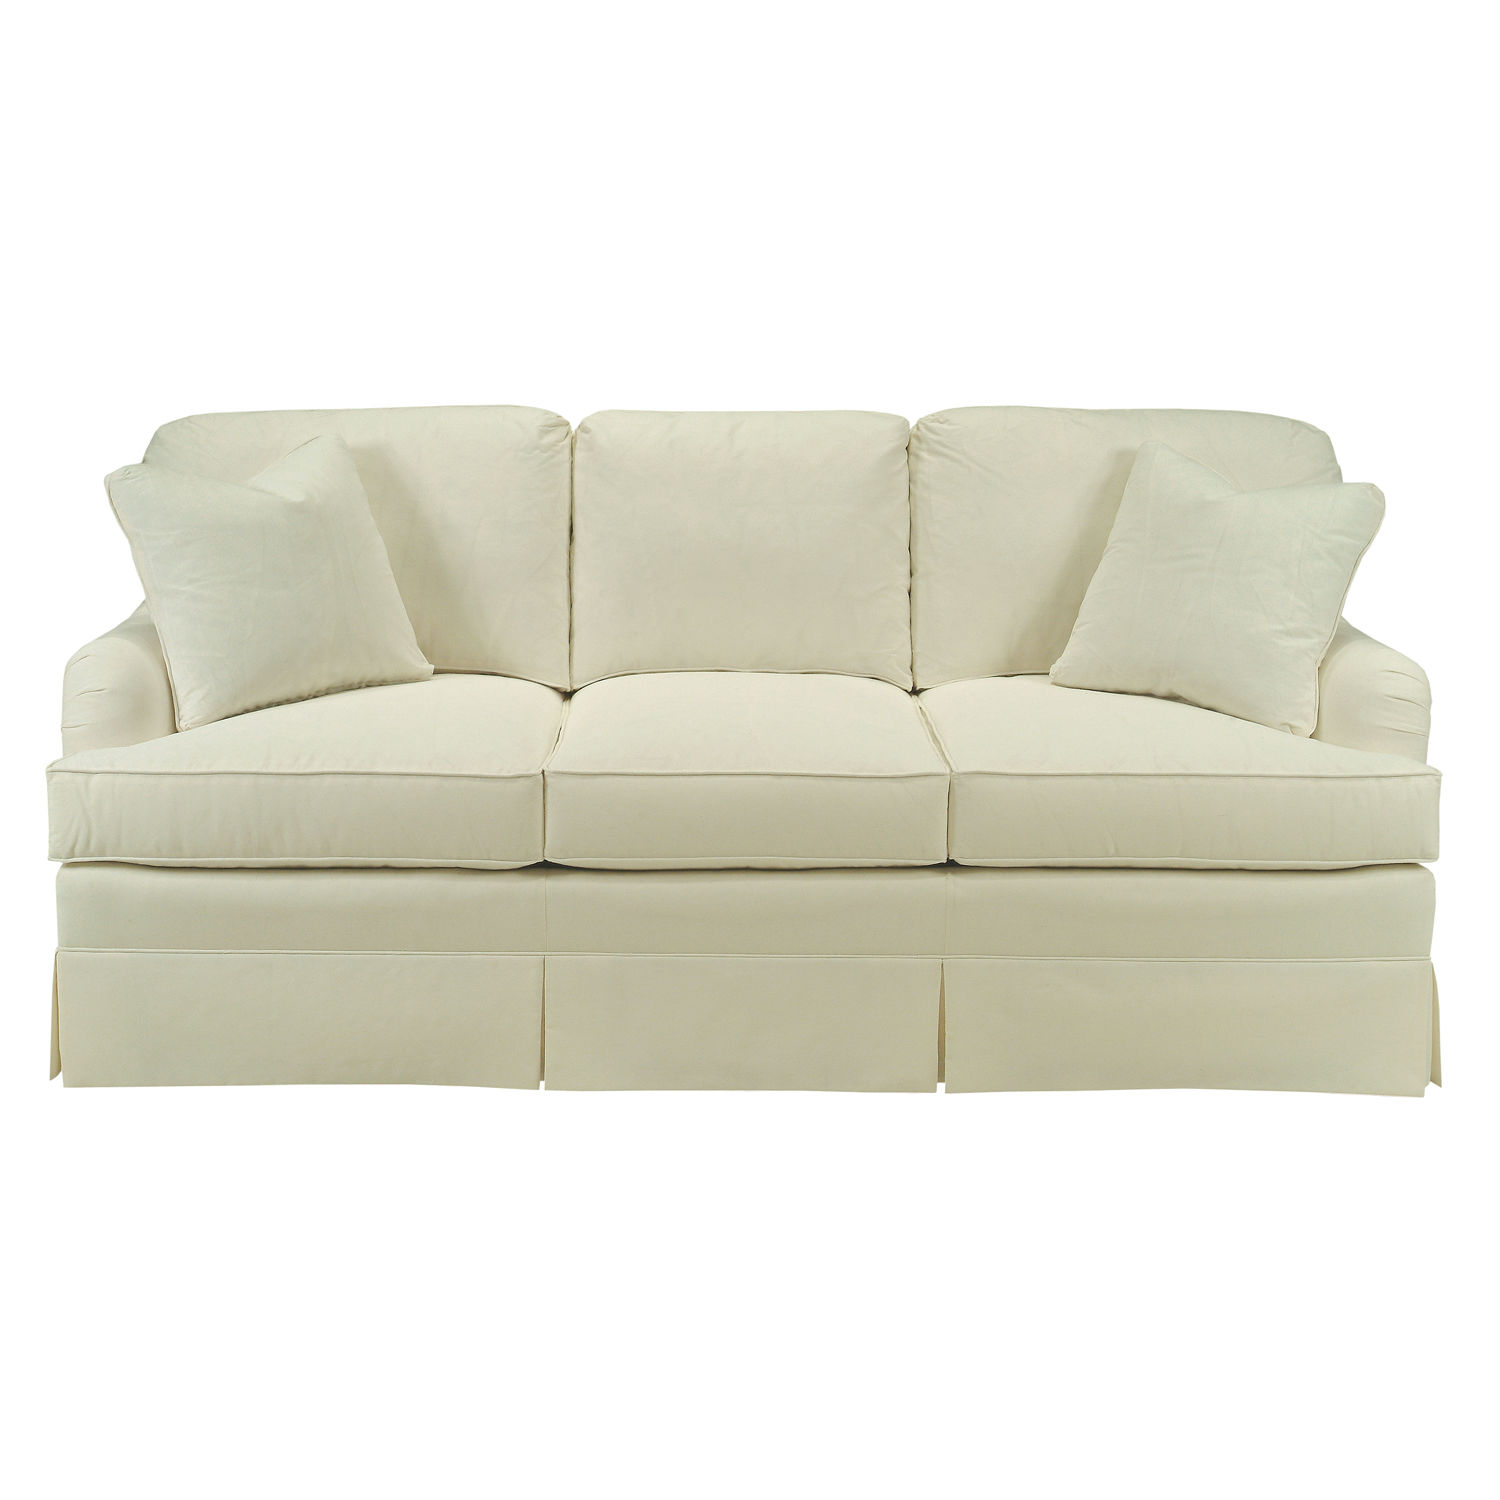 contemporary sofa san francisco online-Lovely sofa San Francisco Collection